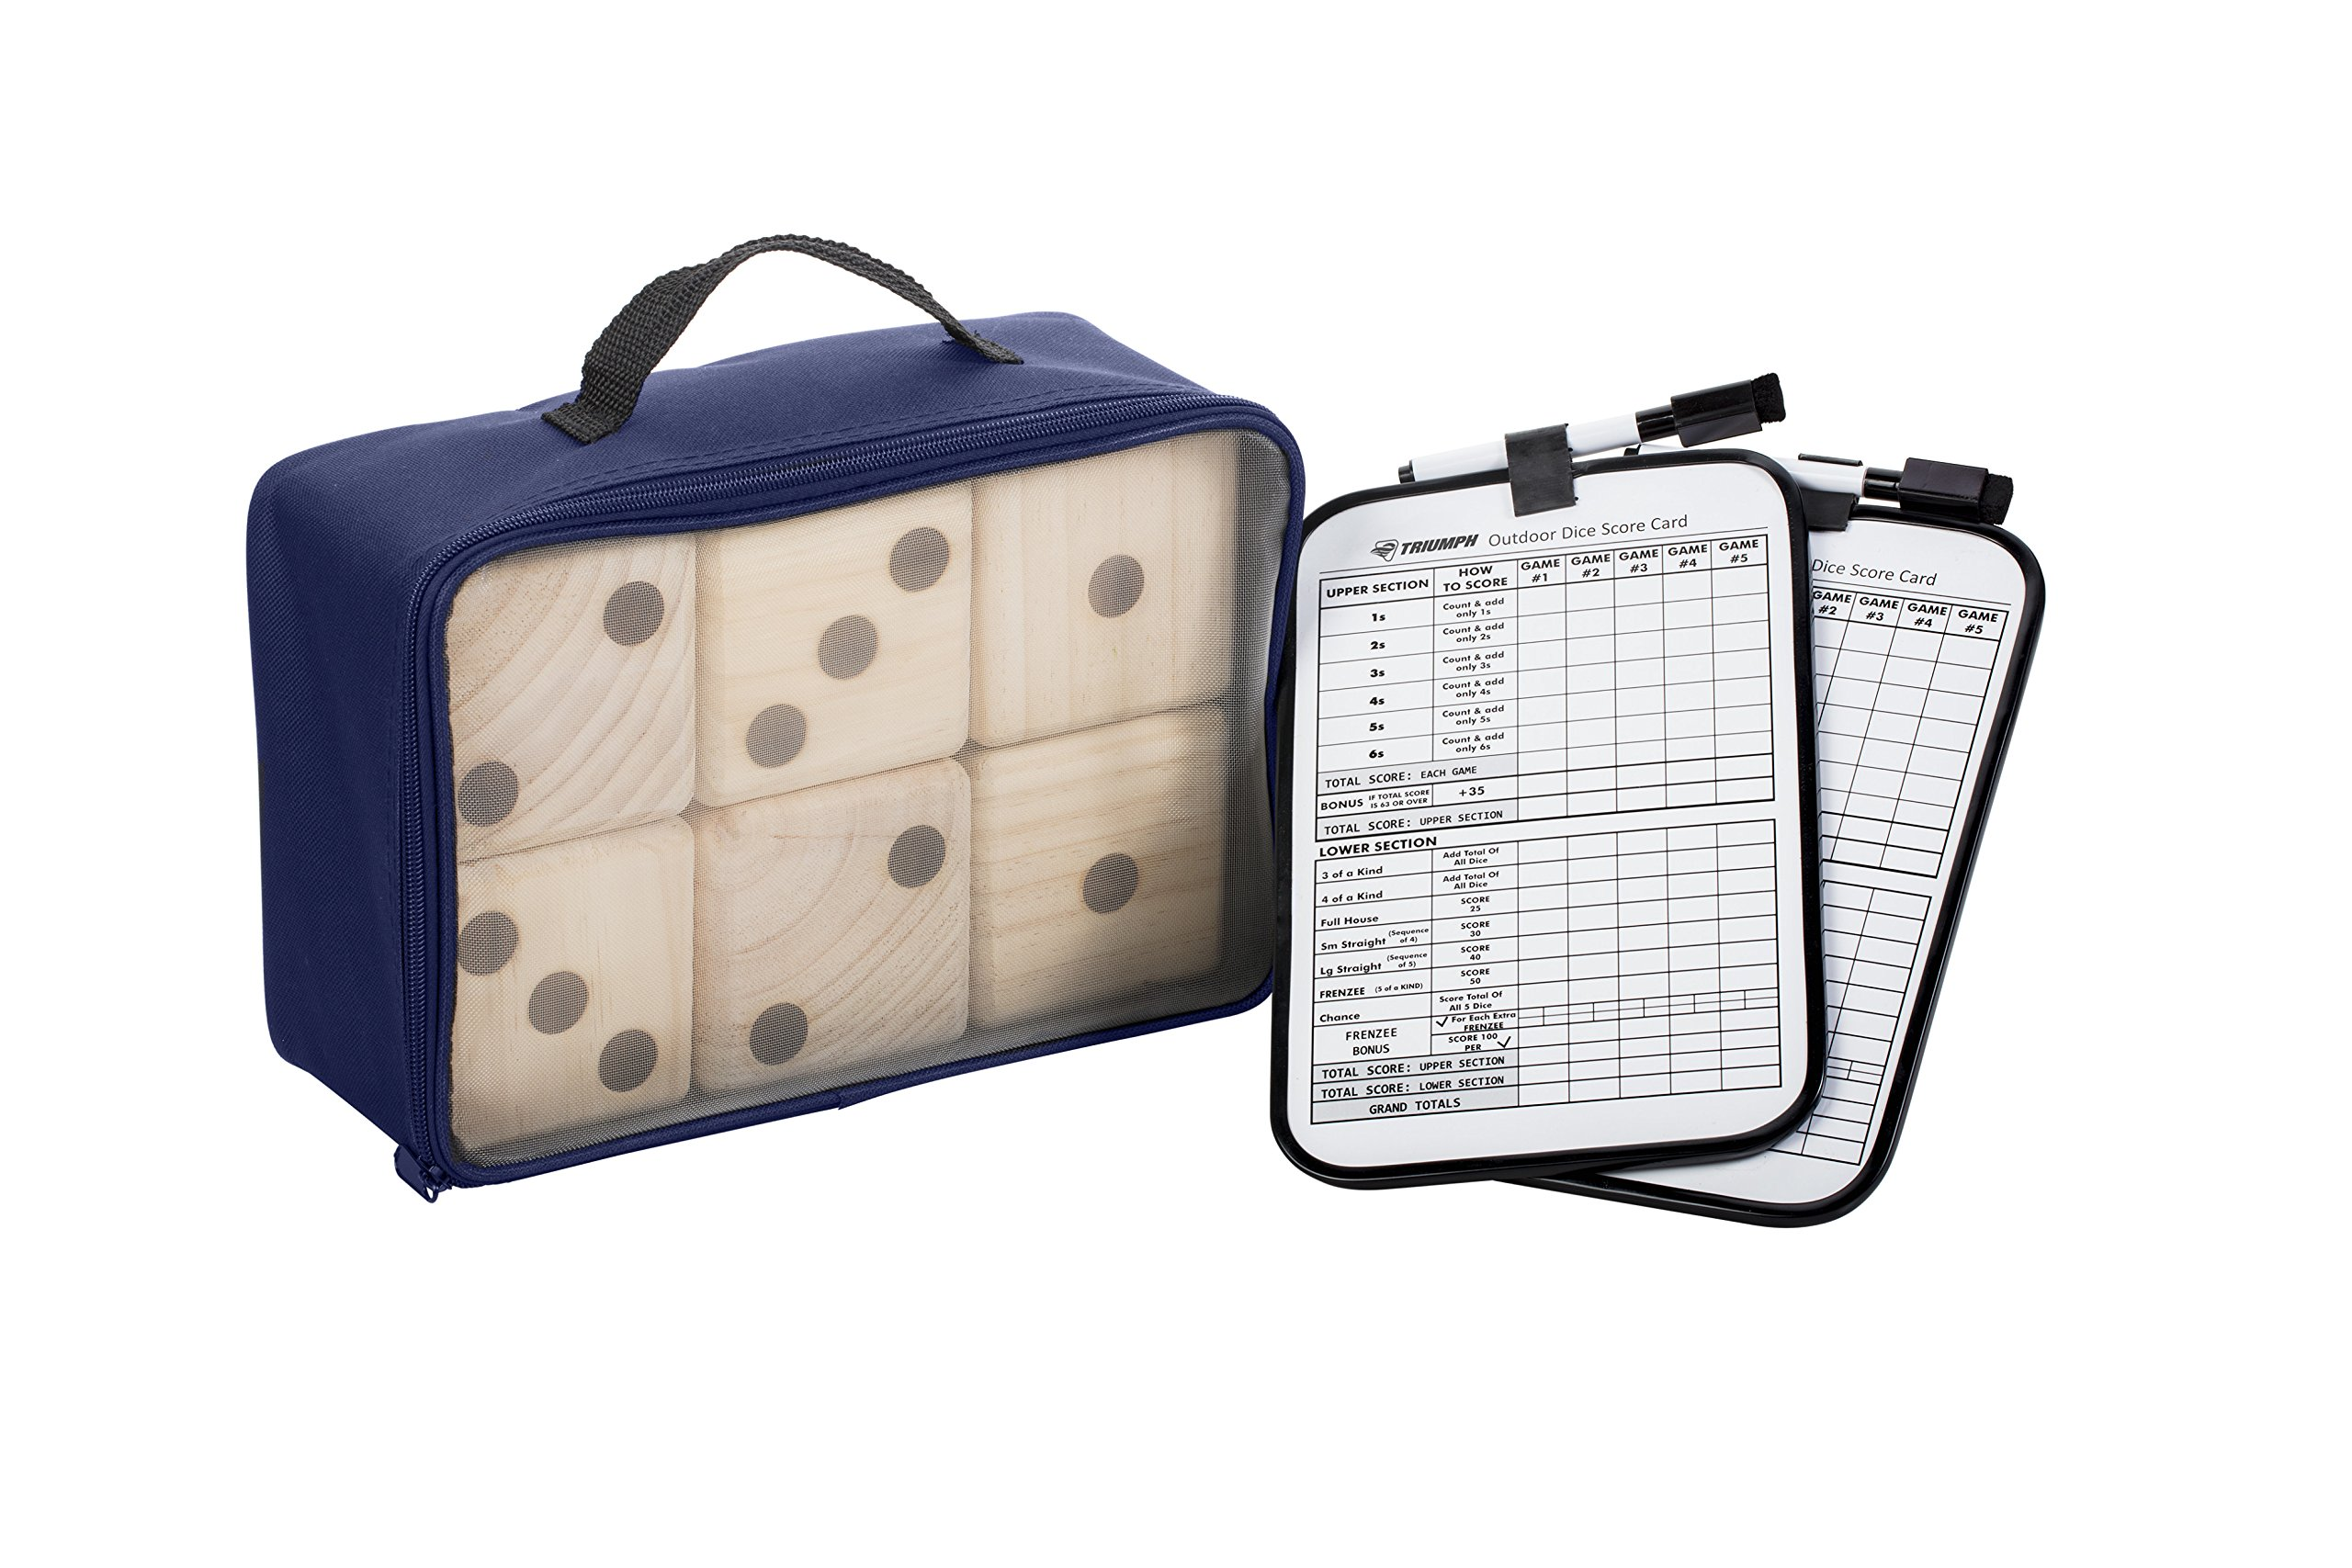 Triumph Big Roller Six Large Wooden Lawn Dice Set for Outdoor Use with Included Dry-Erase Scorecards, Markers, and Carry Bag by Triumph Sports